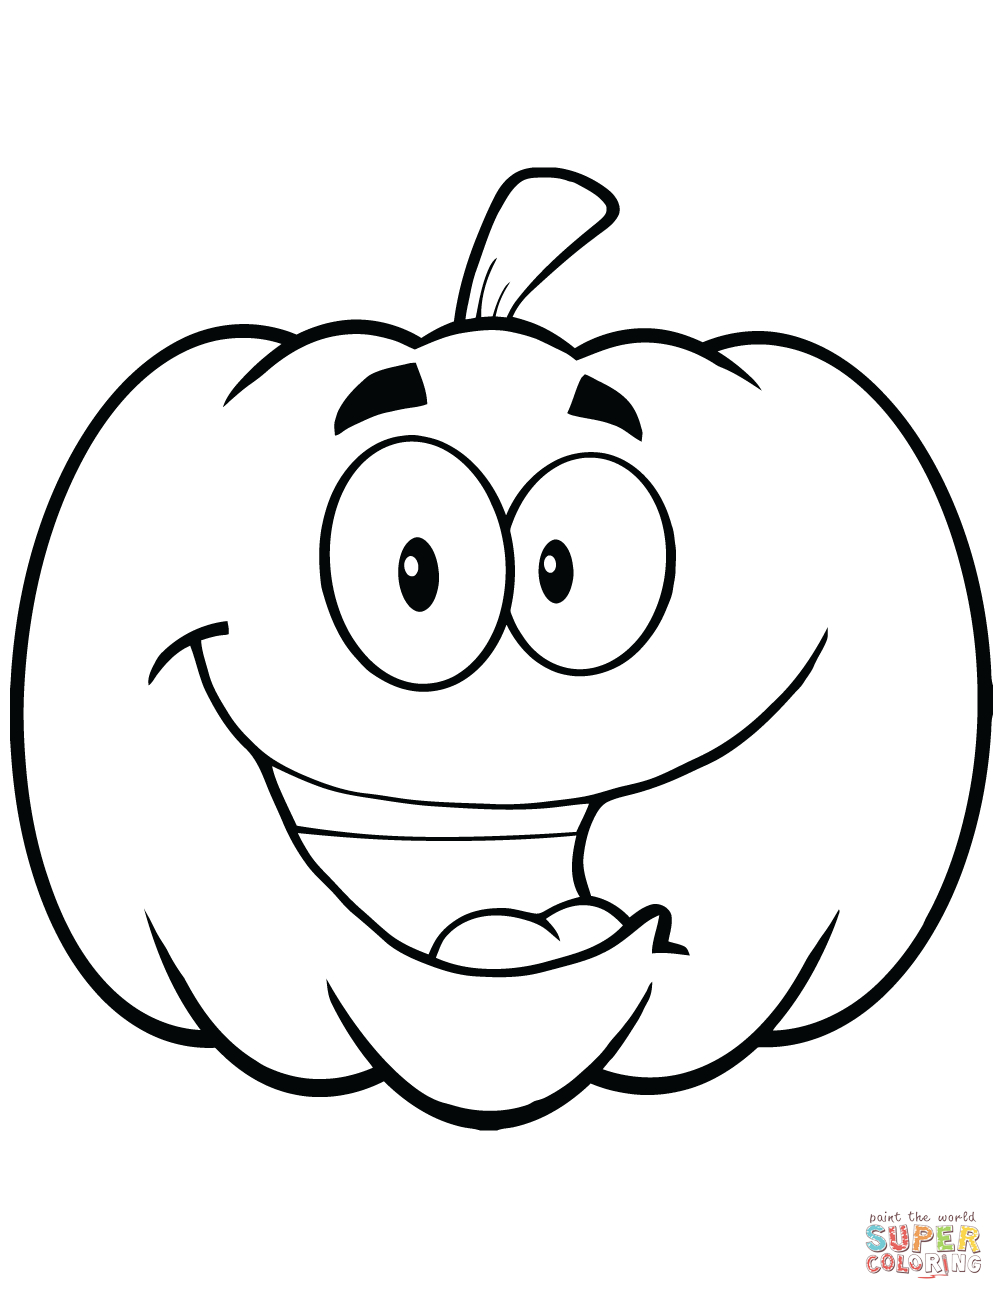 Halloween Pumpkin Coloring Pages Printables Coloring Pages Free Printable Halloween Pumpkining Sheets For Kids